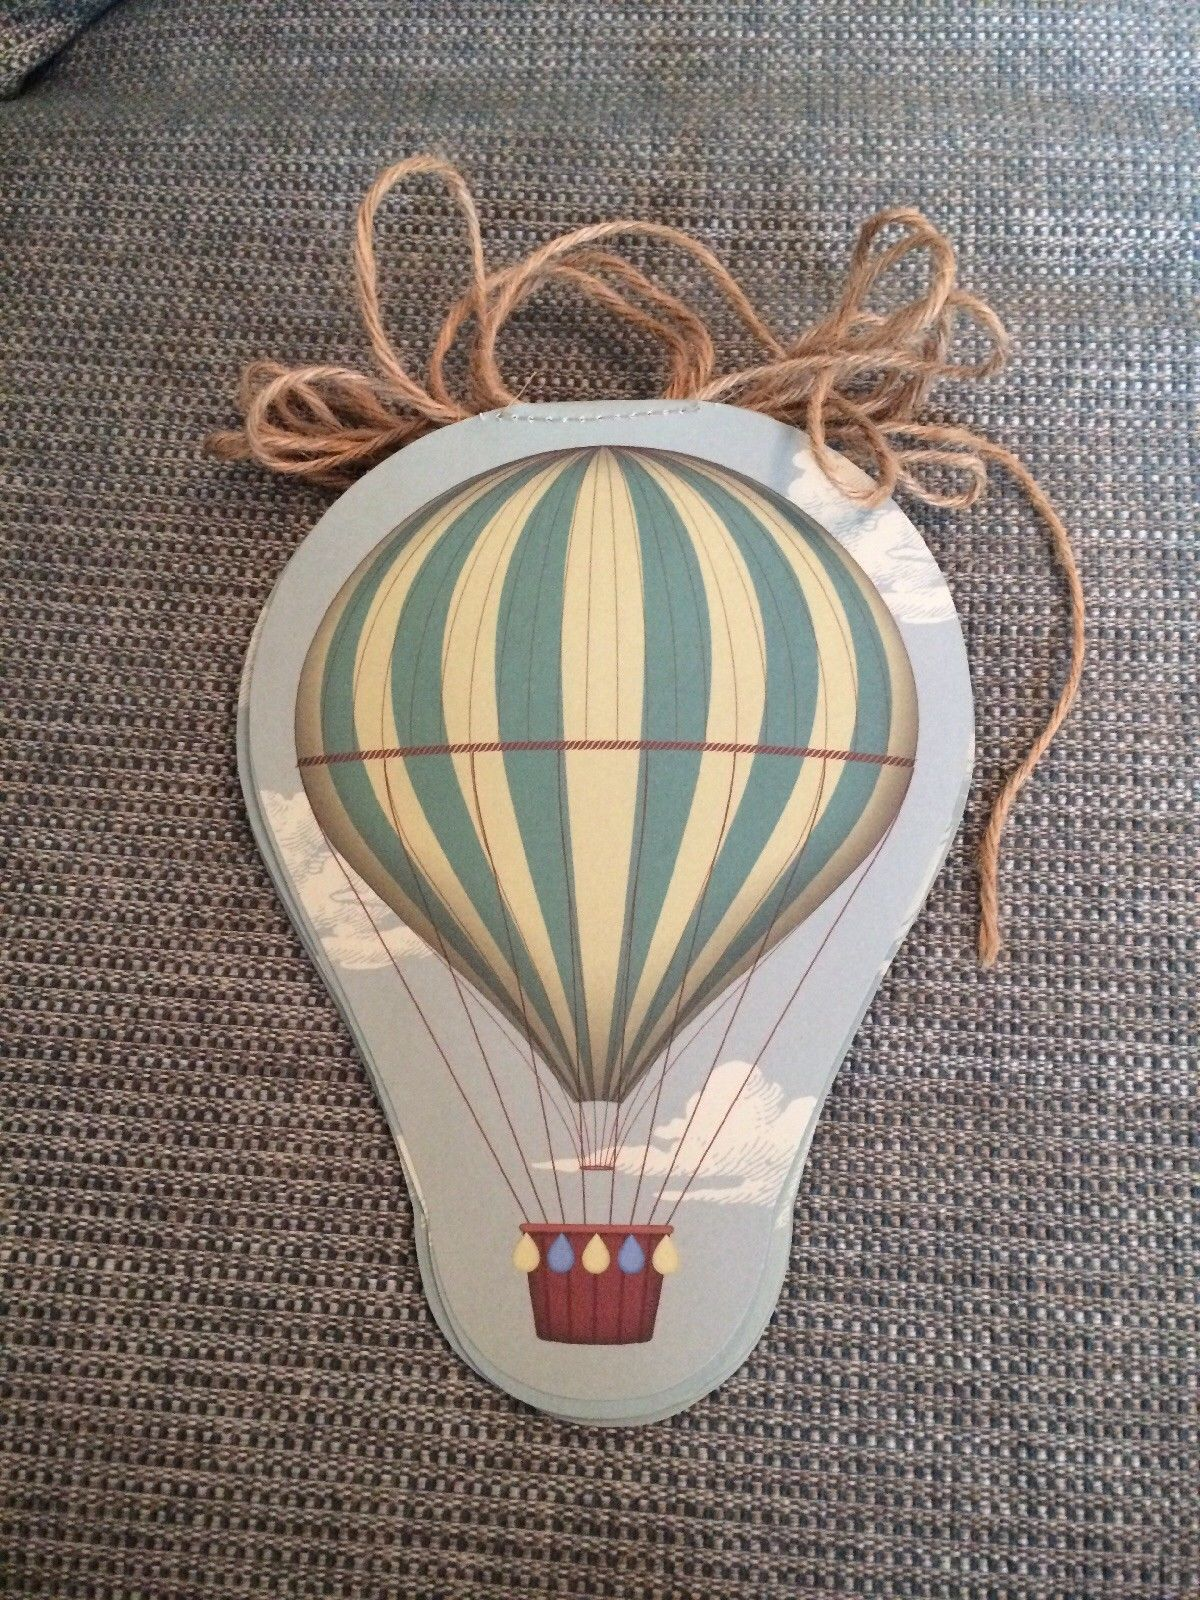 Pin on The Aeronauts & Balloonist of The Victorian and